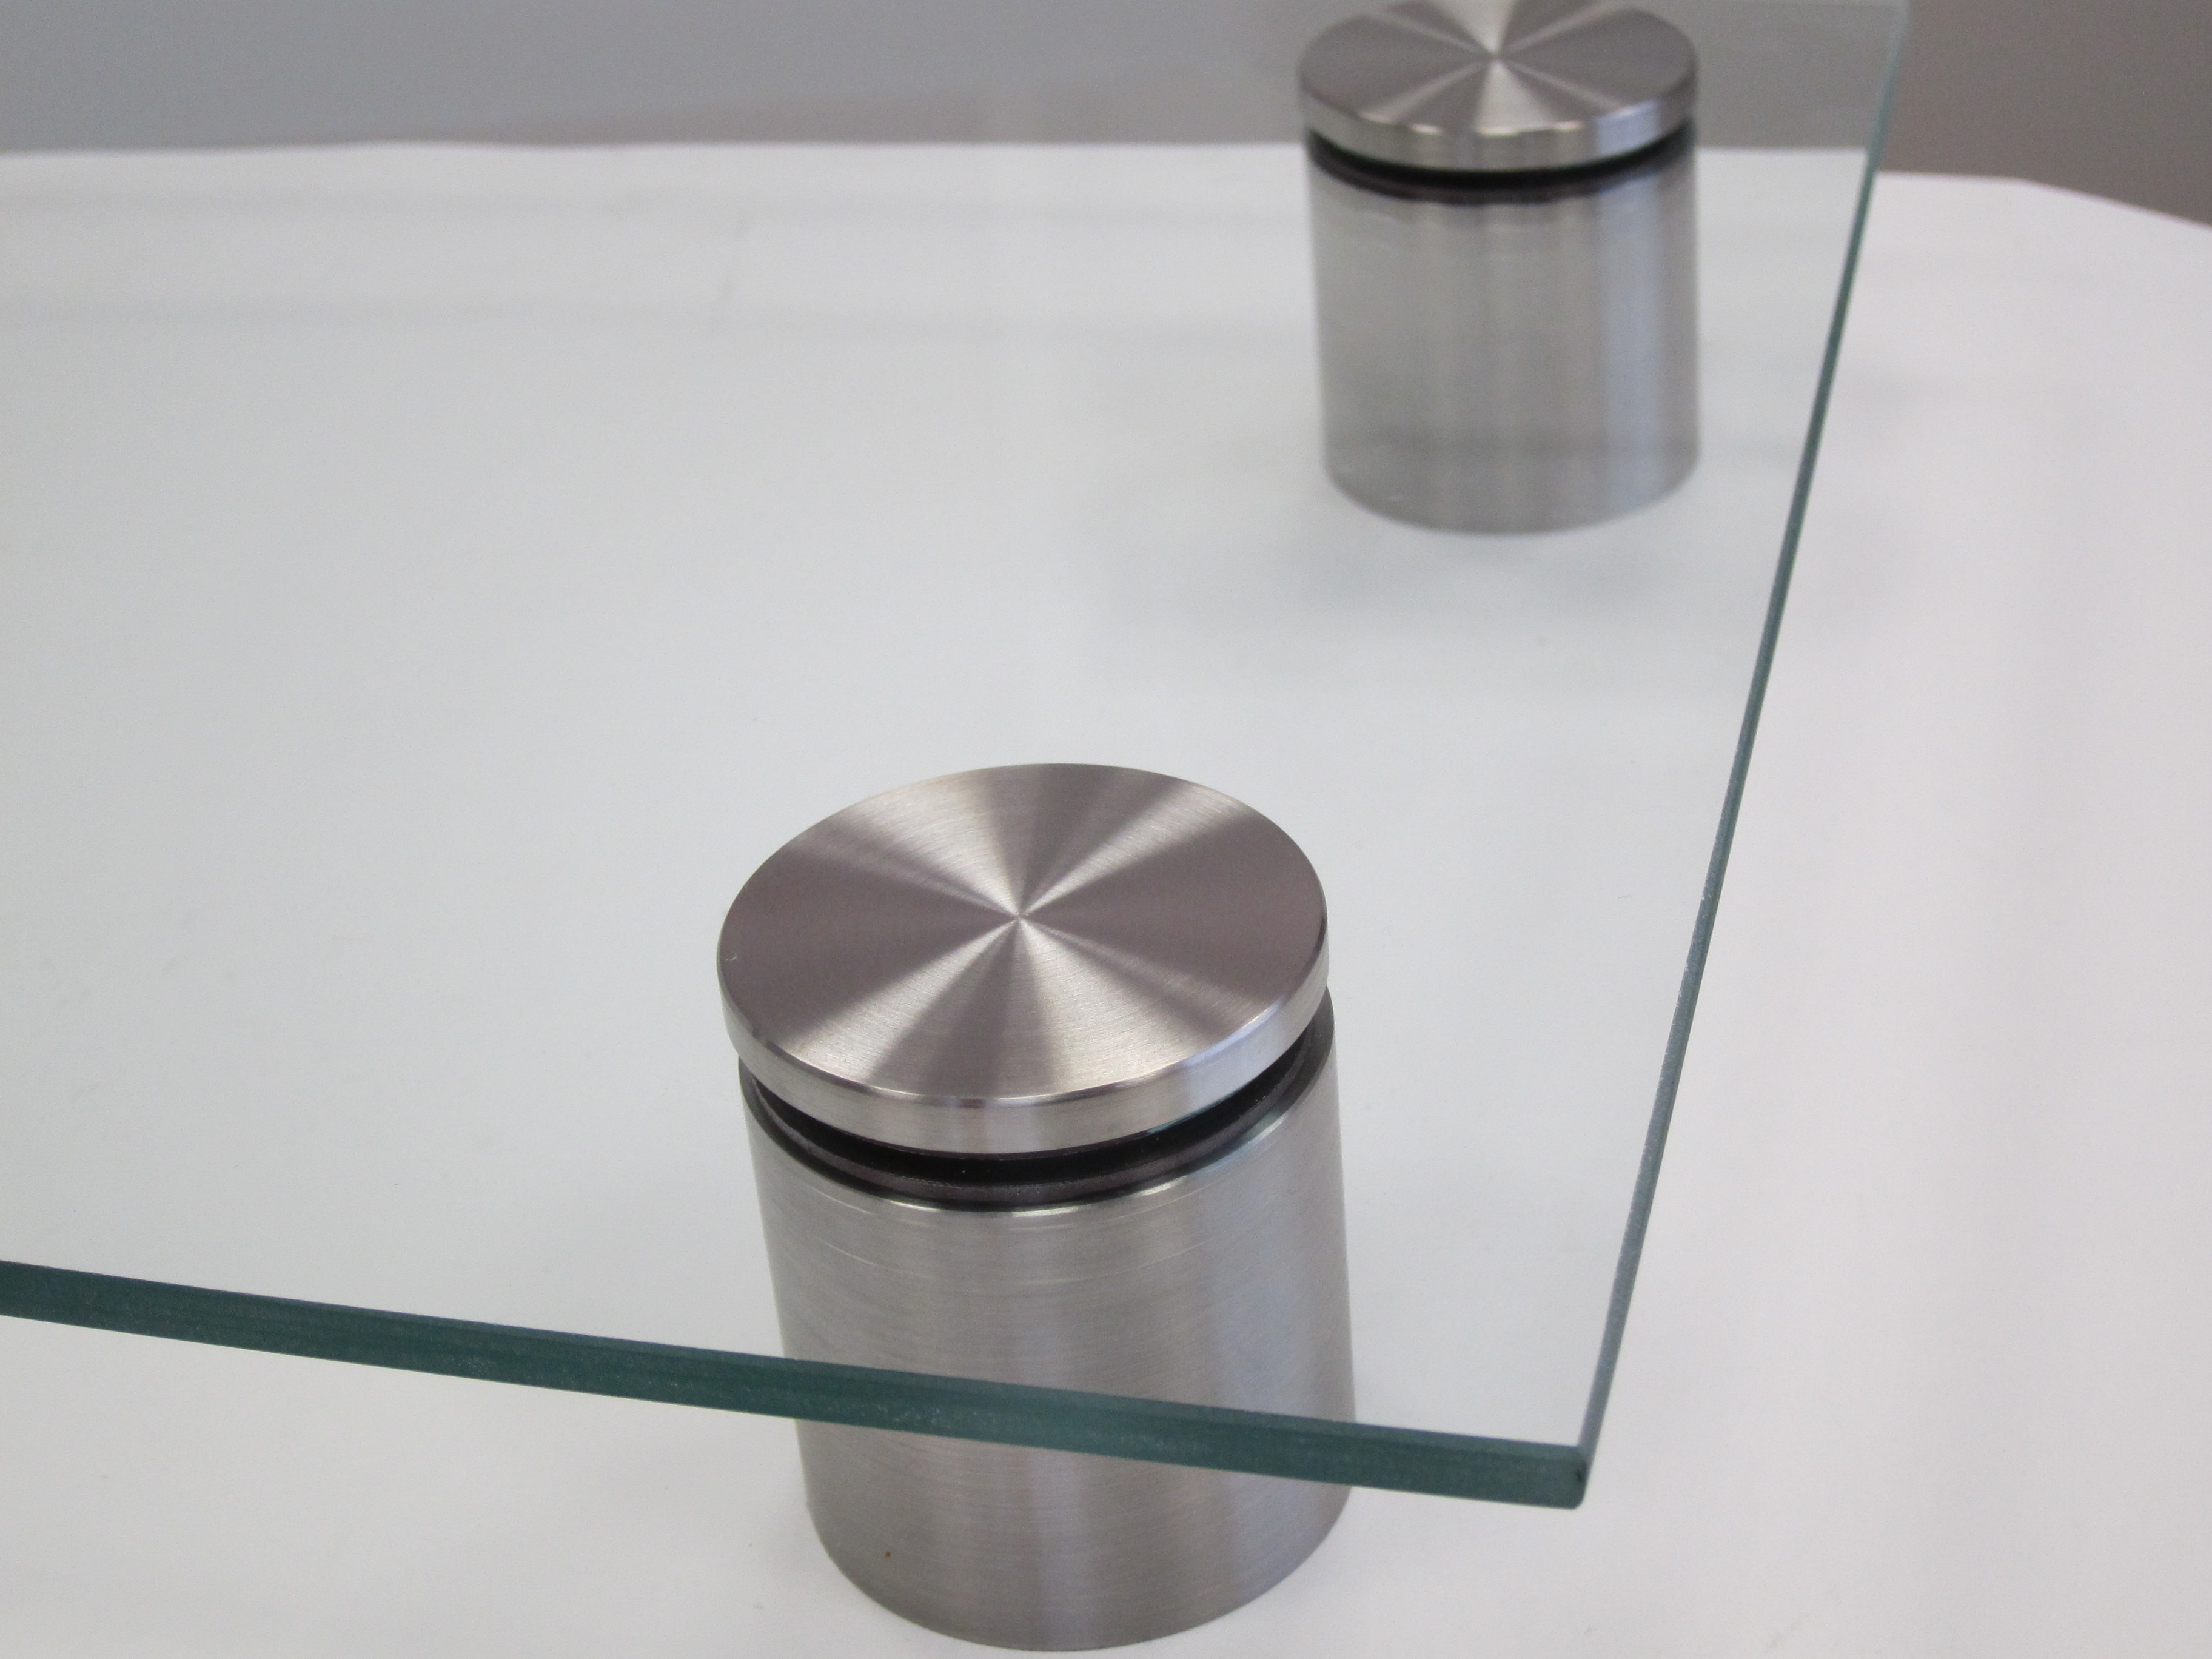 2 Inch Stainless Steel Glass Spacers How To Protect The